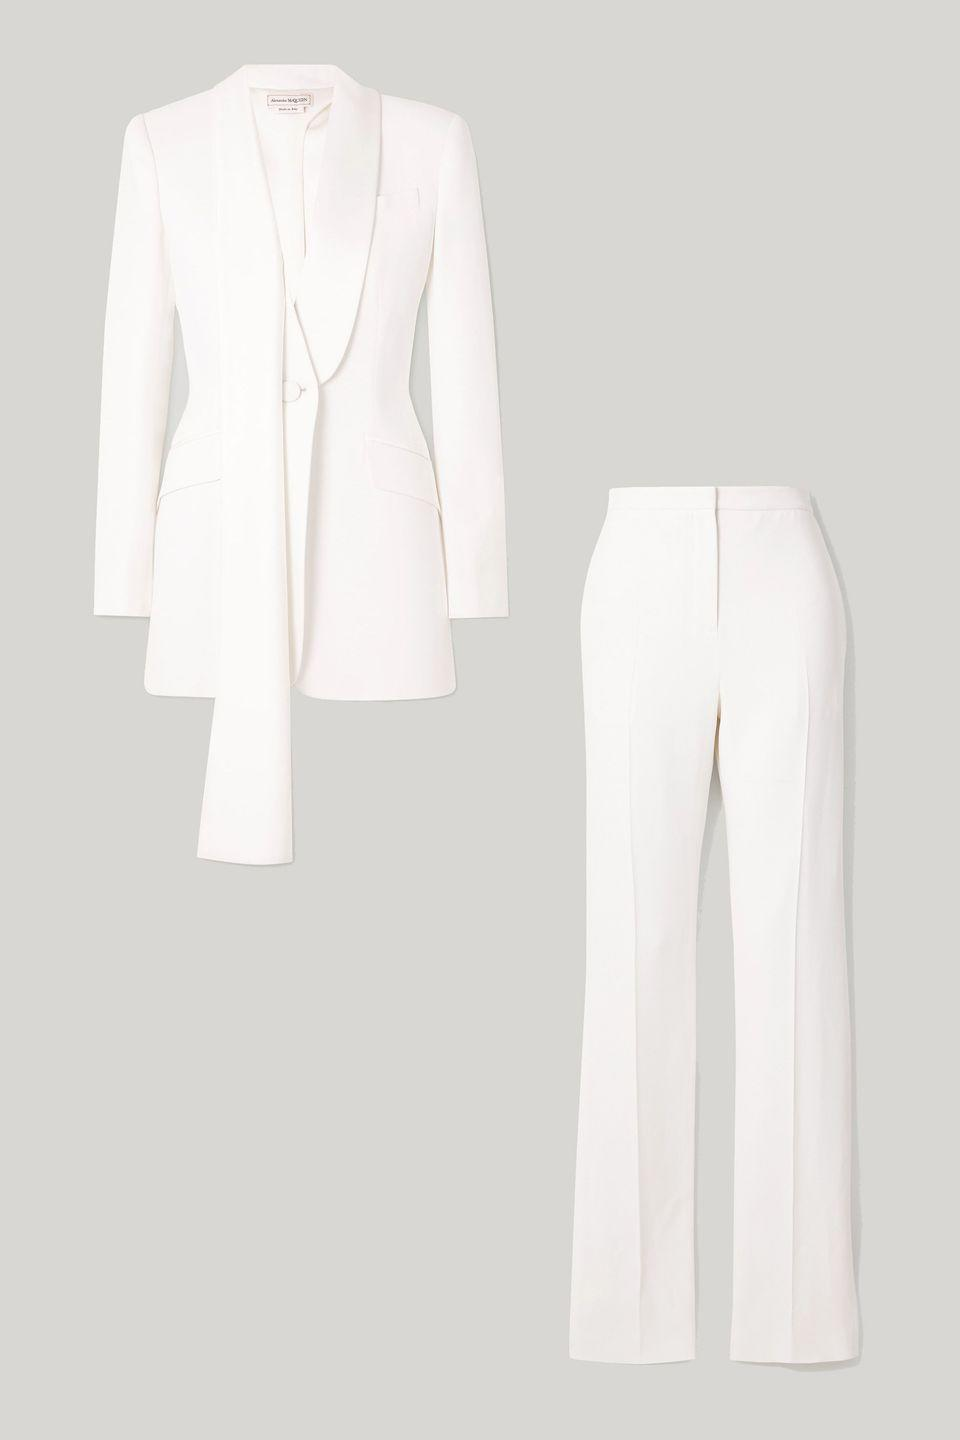 "<p>A sleek white tux is a bridal standard—and we suggest wearing this look without a shirt underneath for evening. Pair straight or wide-legged trousers with a pointed-toe pump to keep your legs looking extra long.</p><p><em>Draped blazer, $2,690, <a href=""https://www.net-a-porter.com/en-us/shop/product/alexander-mcqueen/draped-cutout-crepe-blazer/1301270"" rel=""nofollow noopener"" target=""_blank"" data-ylk=""slk:net-a-porter.com"" class=""link rapid-noclick-resp"">net-a-porter.com</a></em> <a class=""link rapid-noclick-resp"" href=""https://go.redirectingat.com?id=74968X1596630&url=https%3A%2F%2Fwww.net-a-porter.com%2Fen-us%2Fshop%2Fproduct%2Falexander-mcqueen%2Fdraped-cutout-crepe-blazer%2F1301270&sref=https%3A%2F%2Fwww.harpersbazaar.com%2Fwedding%2Fbridal-fashion%2Fg35154193%2Fbest-wedding-suits-for-women%2F"" rel=""nofollow noopener"" target=""_blank"" data-ylk=""slk:SHOP"">SHOP</a></p><p><em>Slim-leg pants, $860, <a href=""https://www.net-a-porter.com/en-us/shop/product/alexander-mcqueen/crepe-slim-leg-pants/1301273"" rel=""nofollow noopener"" target=""_blank"" data-ylk=""slk:net-a-porter.com"" class=""link rapid-noclick-resp"">net-a-porter.com</a></em> <a class=""link rapid-noclick-resp"" href=""https://go.redirectingat.com?id=74968X1596630&url=https%3A%2F%2Fwww.net-a-porter.com%2Fen-us%2Fshop%2Fproduct%2Falexander-mcqueen%2Fcrepe-slim-leg-pants%2F1301273&sref=https%3A%2F%2Fwww.harpersbazaar.com%2Fwedding%2Fbridal-fashion%2Fg35154193%2Fbest-wedding-suits-for-women%2F"" rel=""nofollow noopener"" target=""_blank"" data-ylk=""slk:SHOP"">SHOP</a></p>"